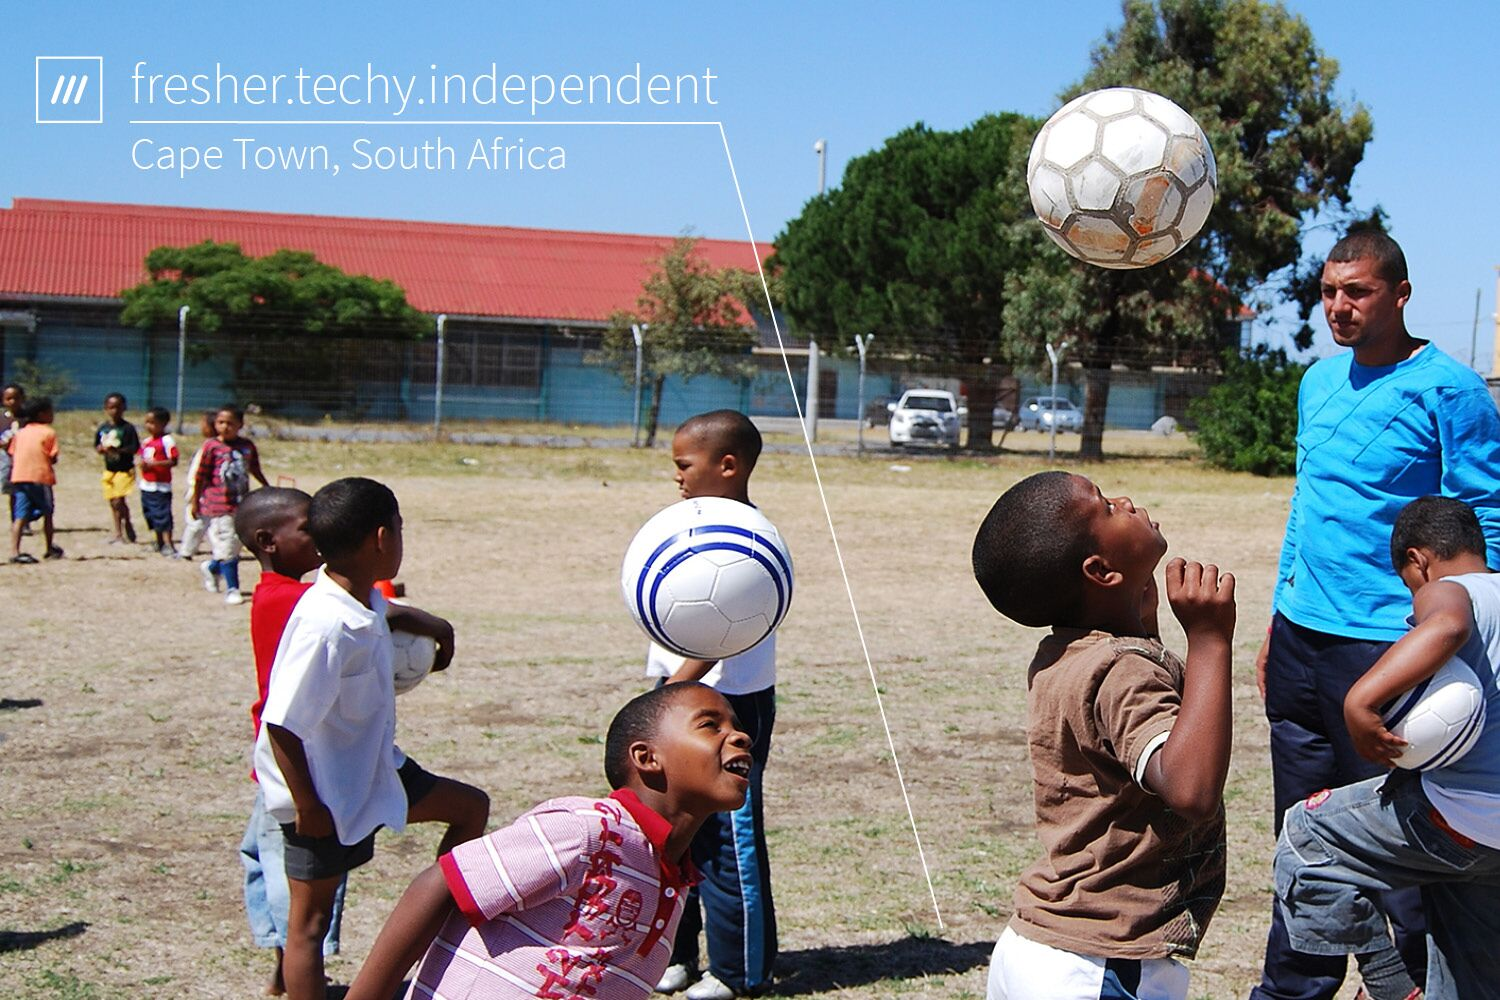 kids playing with football at 3 word address fresher.techy.independent